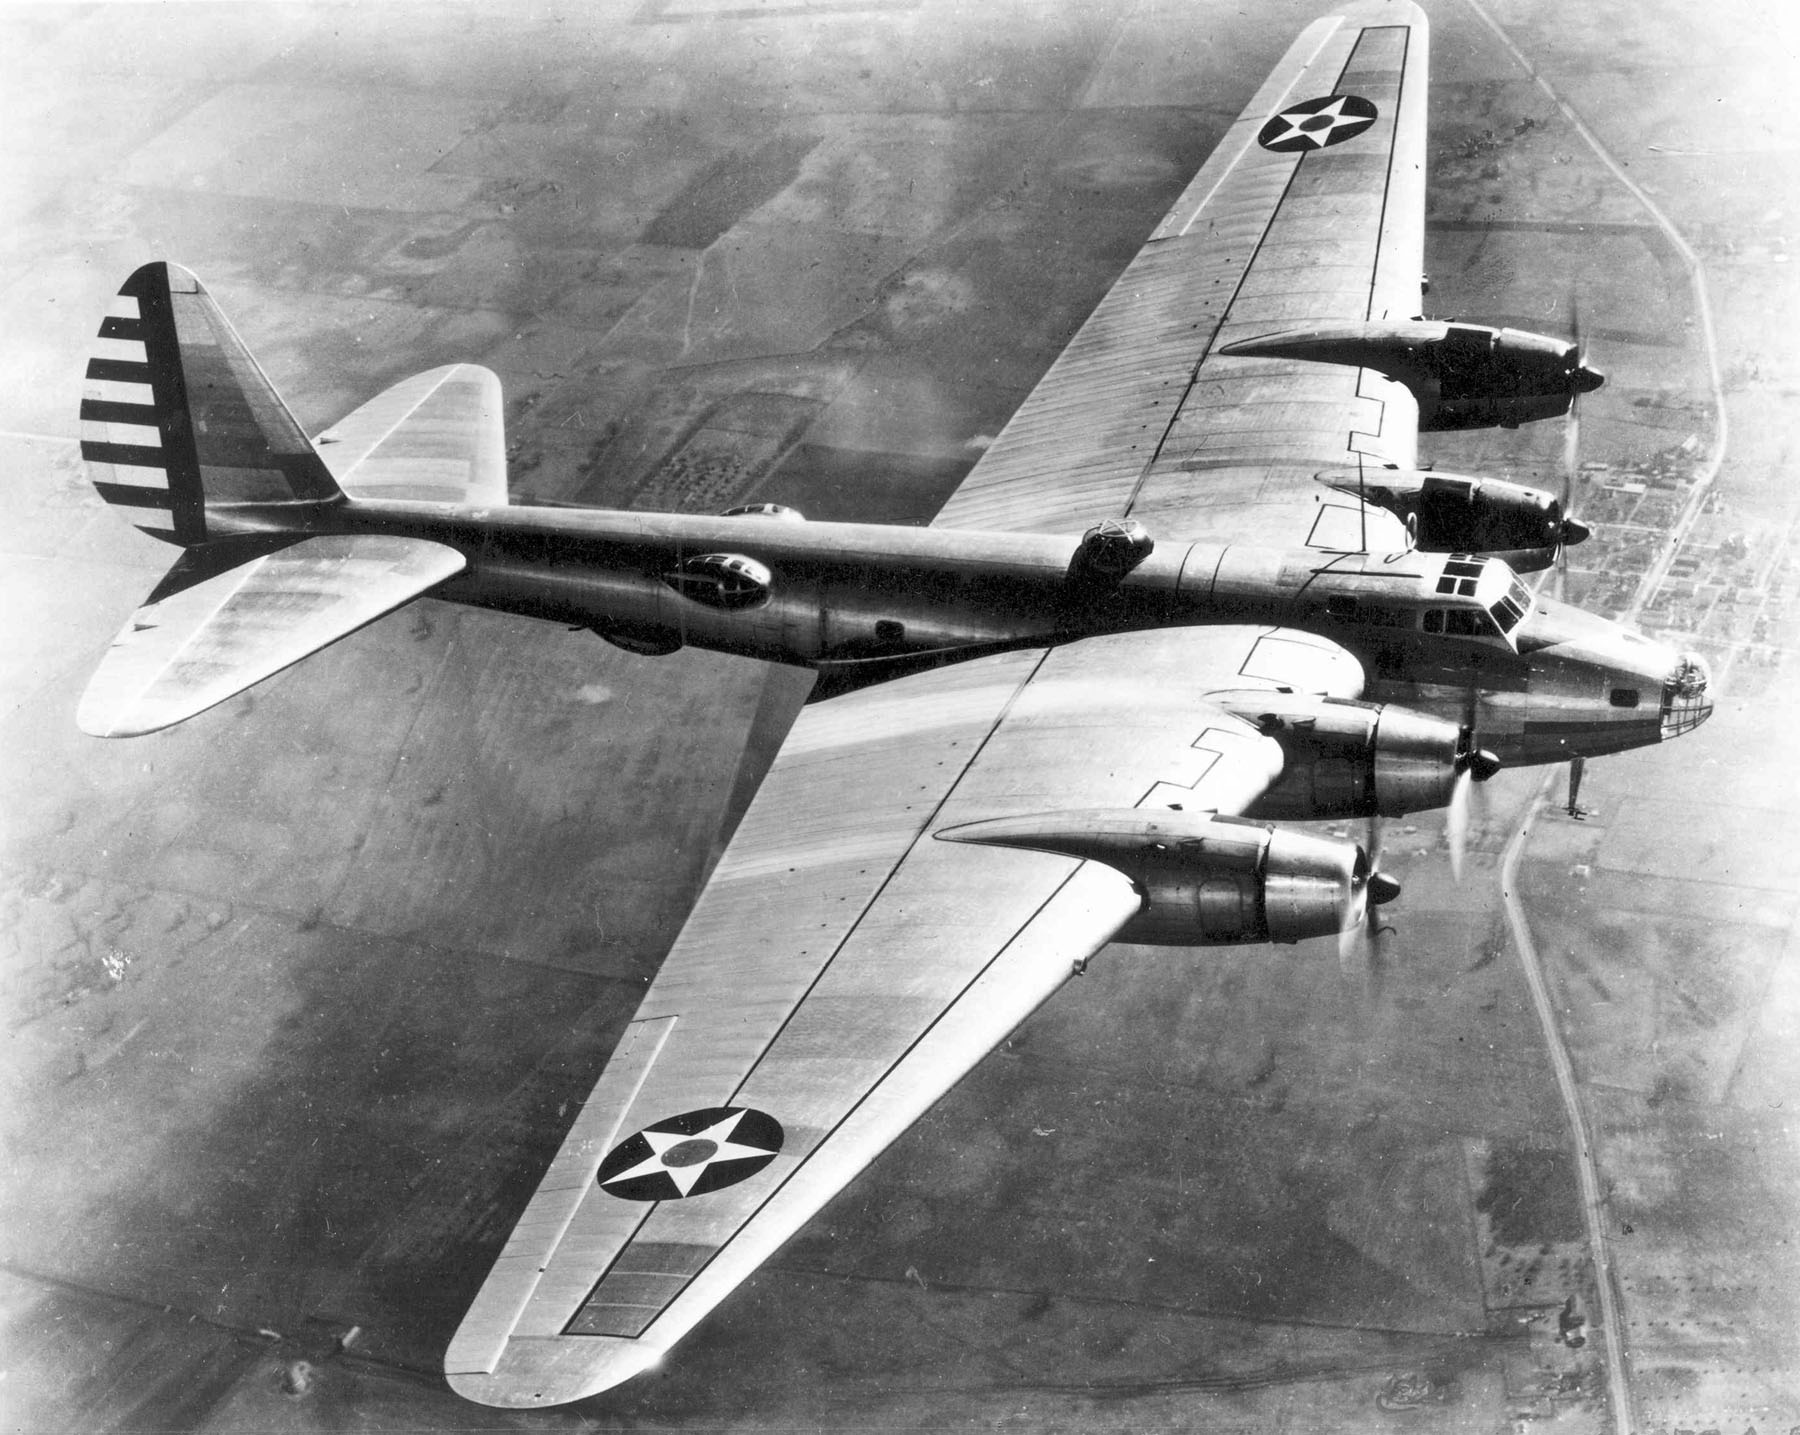 ca2566982 B-17 from experimantal to bomber - Historical Discussion - War ...